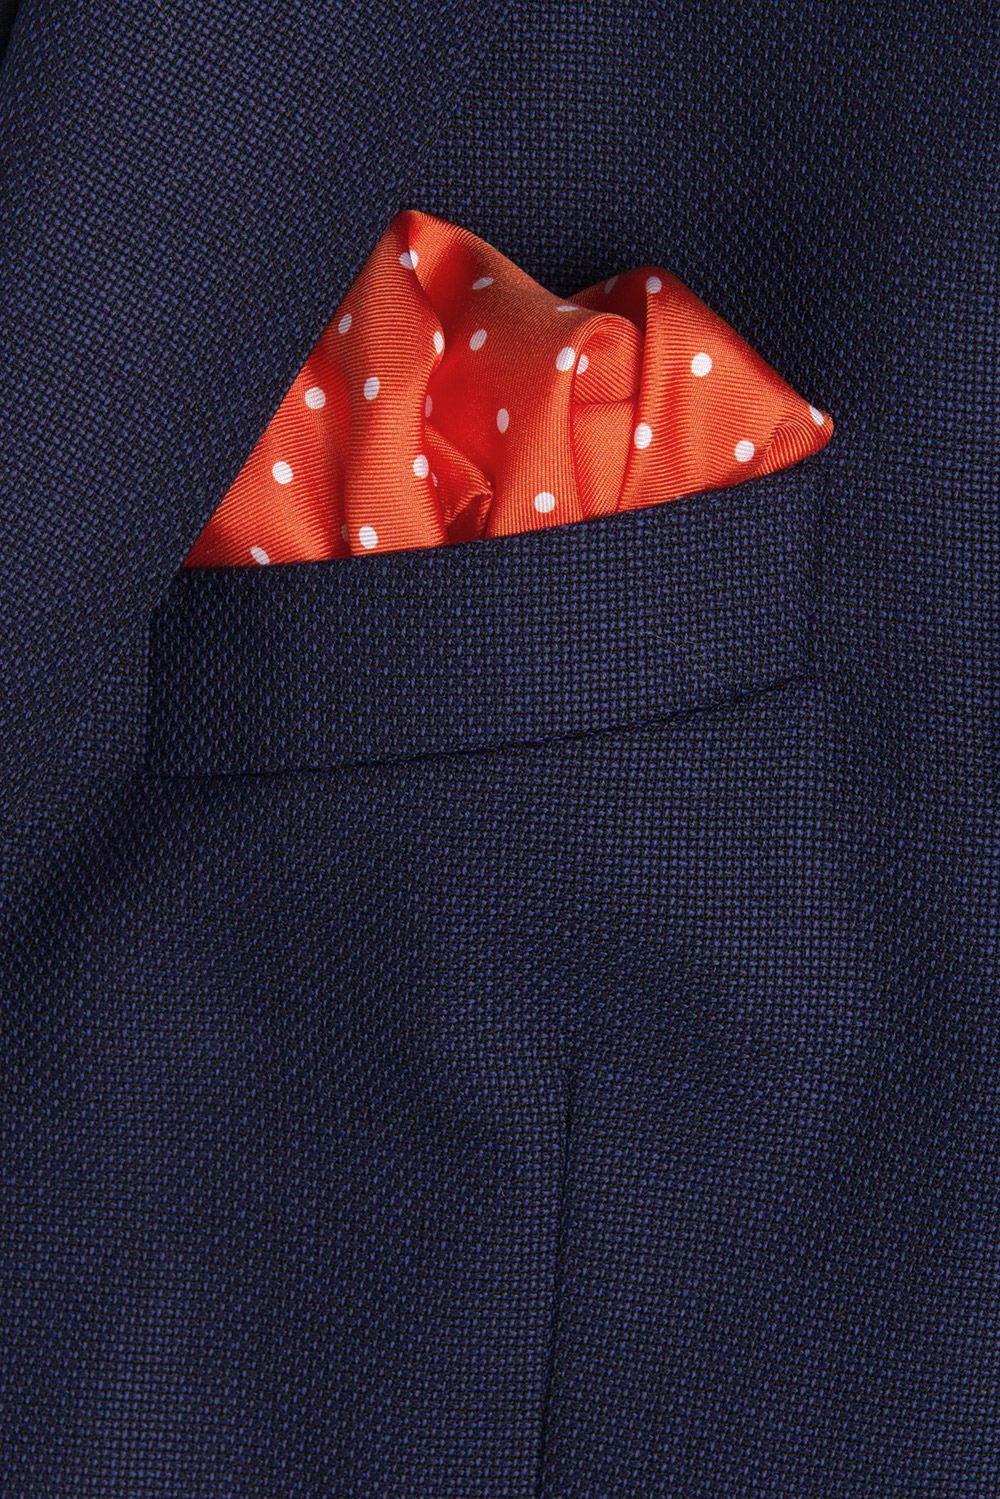 Orange Pocket square 1